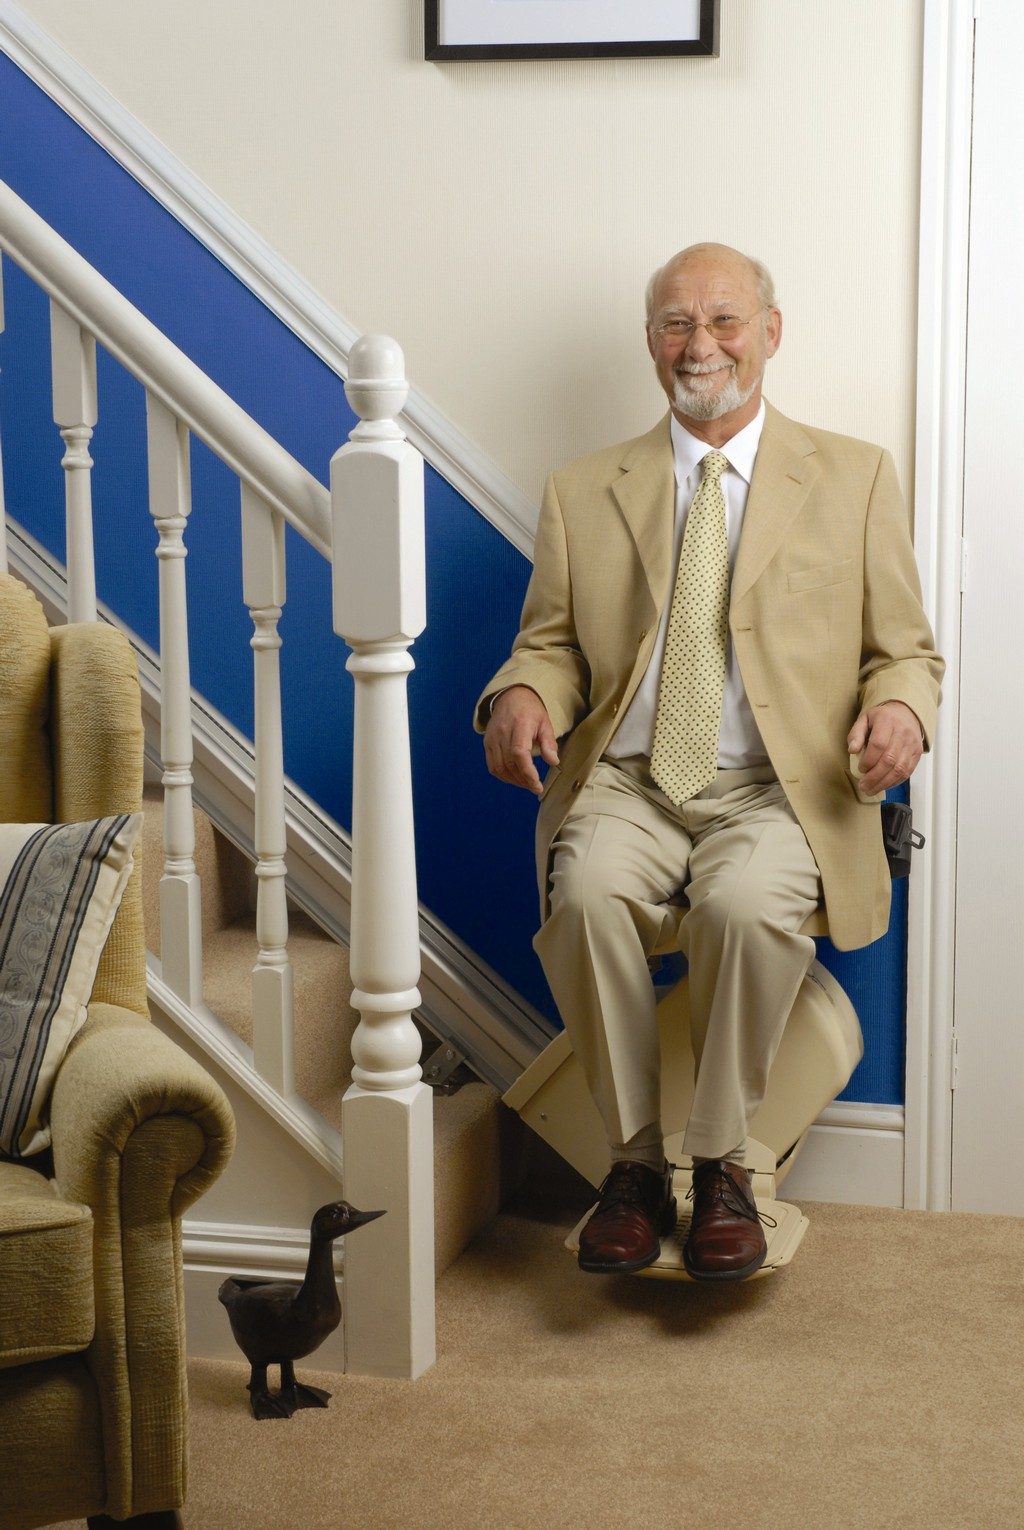 stannah stair lift, stair lifts nj, bruno curved stair lift, excel stairlift